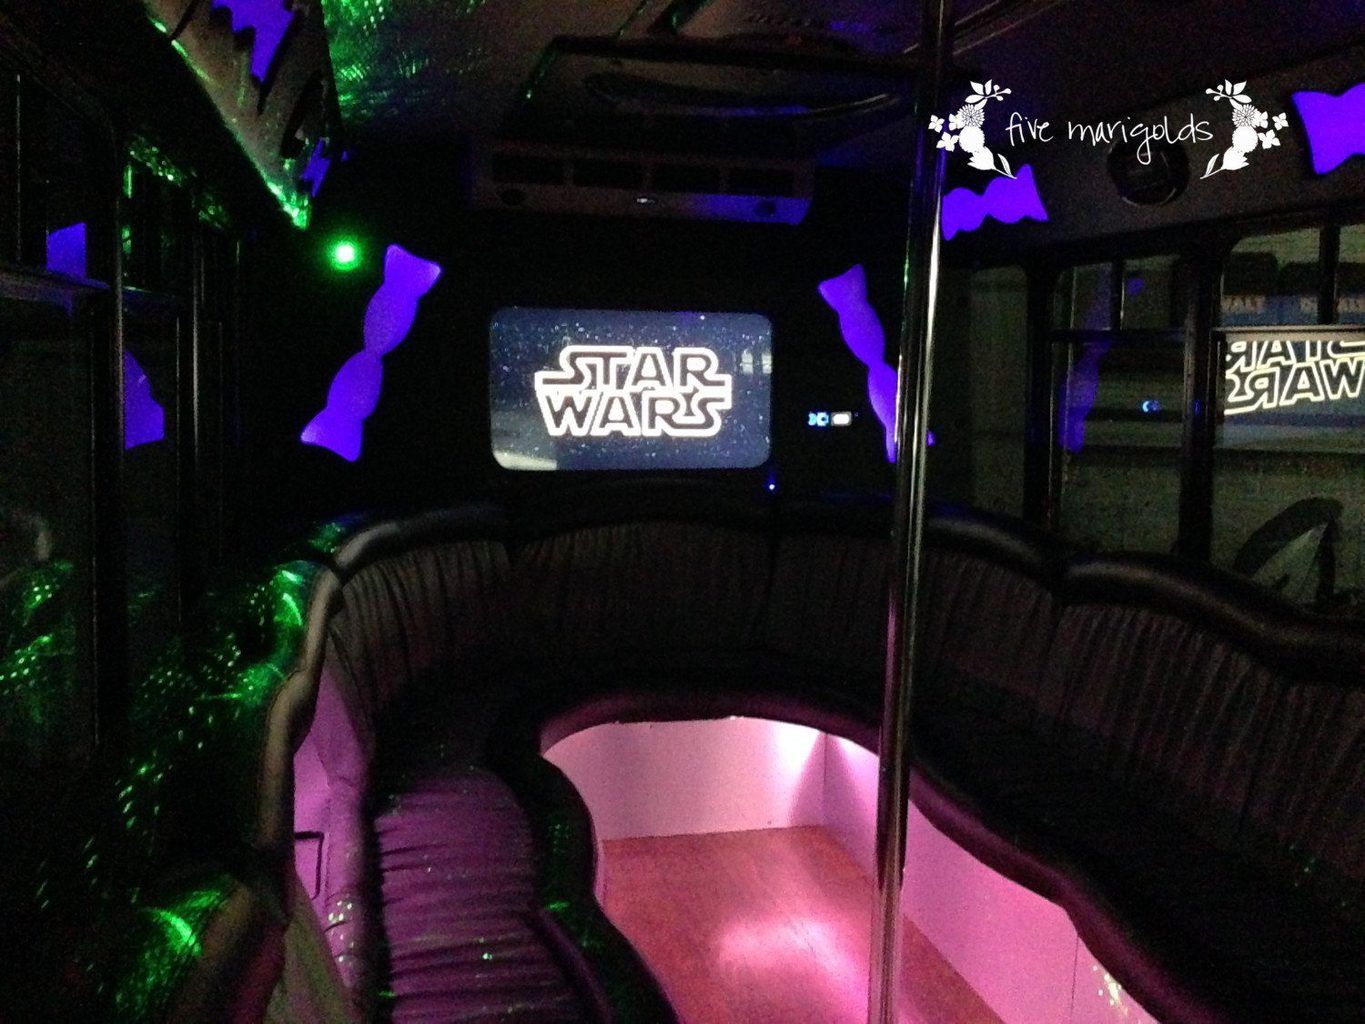 Star Wars Birthday Party Dark Side Movie Theater Party Bus | www.fivemarigolds.com